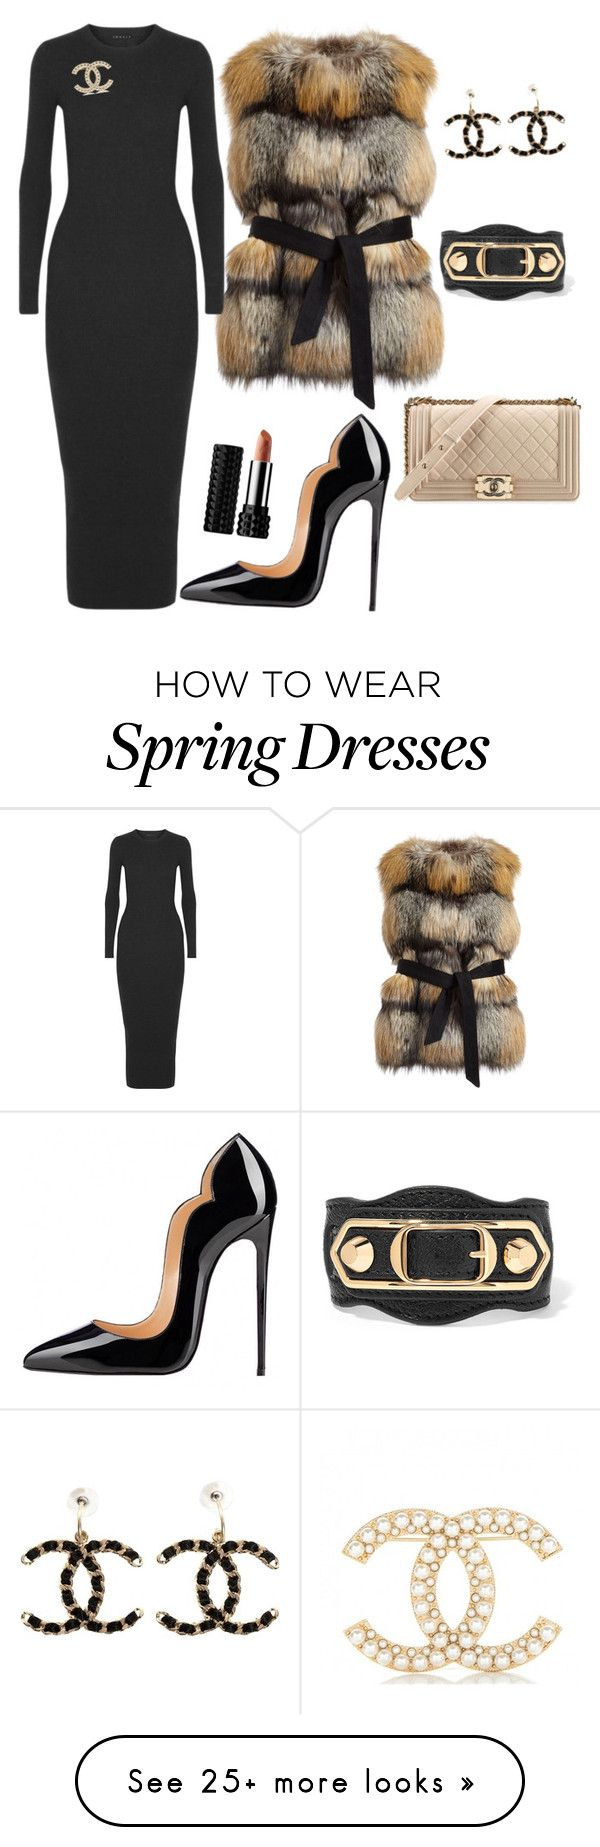 """Untitled #11"" by l-kfoster on Polyvore featuring Gorski, Theory, Balenciaga and Chanel"